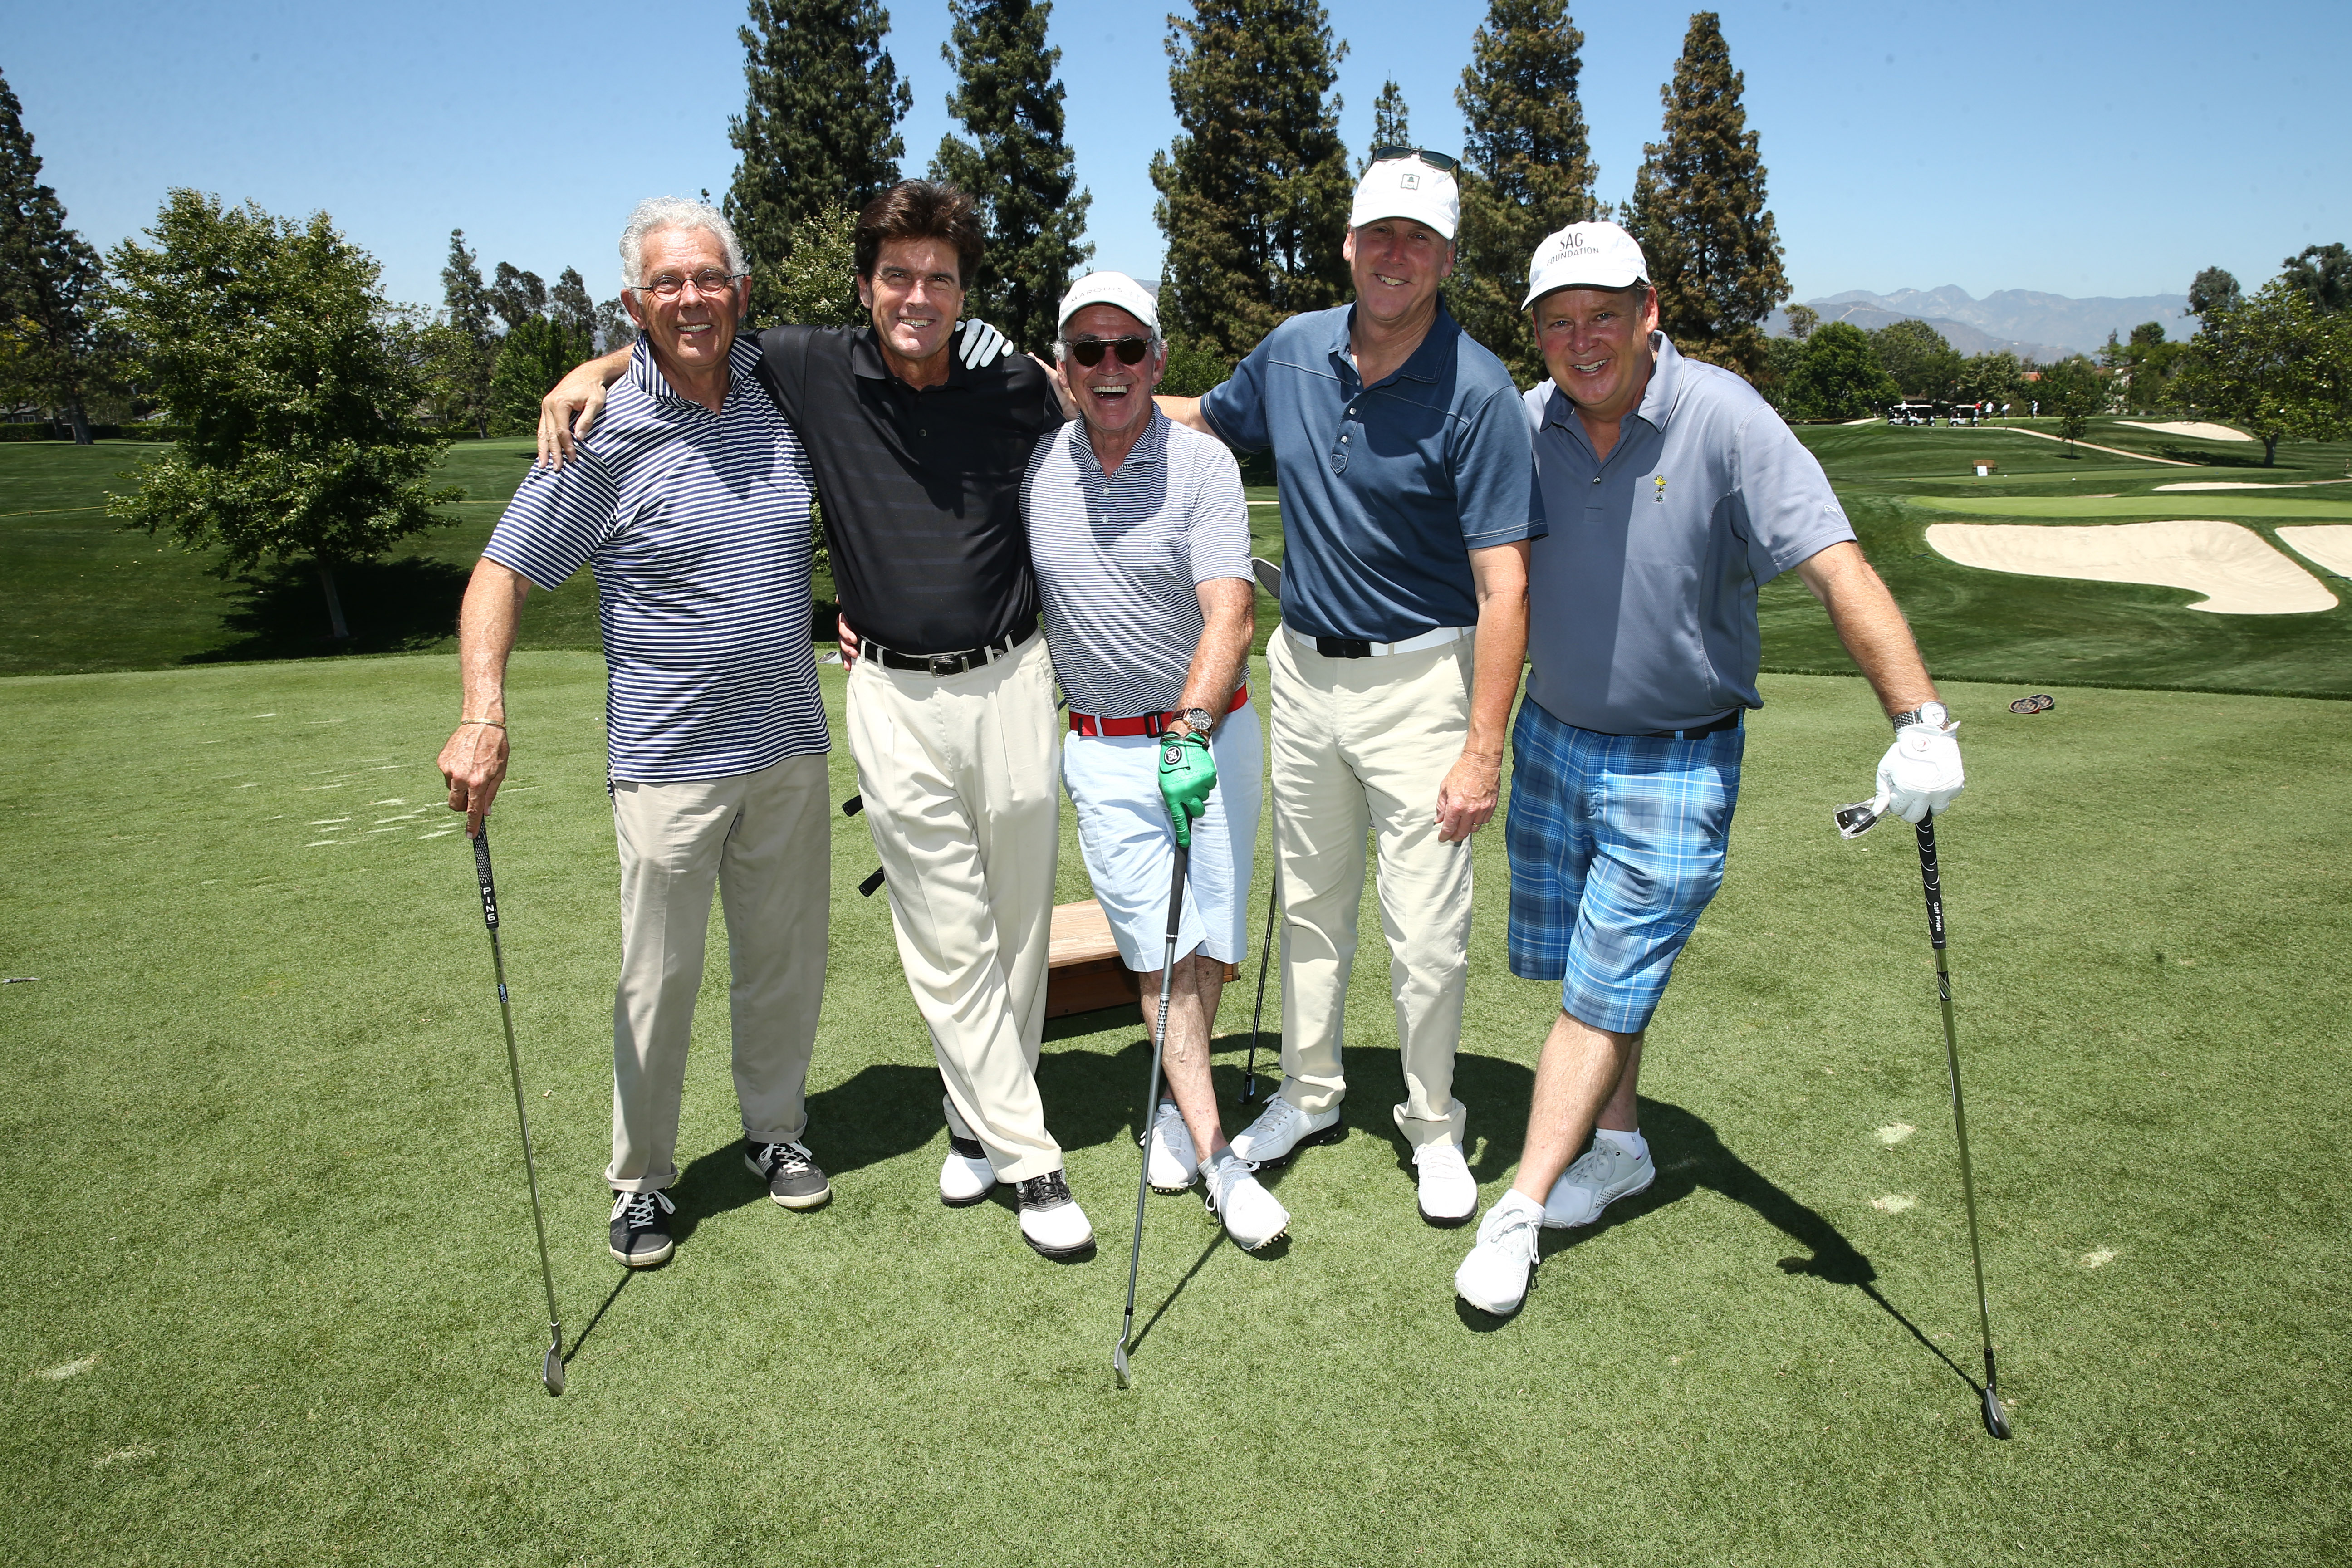 Cameron Todd, Dallas Marvil, Marty Hackel, Mark Harryman and Joel Murray of Team Fairway & Greene play at the Screen Actors Guild Foundation's 6th Annual Los Angeles Golf Classic on June 8, 2015 in Burbank, California. (Photo by Mark Davis/Getty Images for The Screen Actors Guild Foundation)